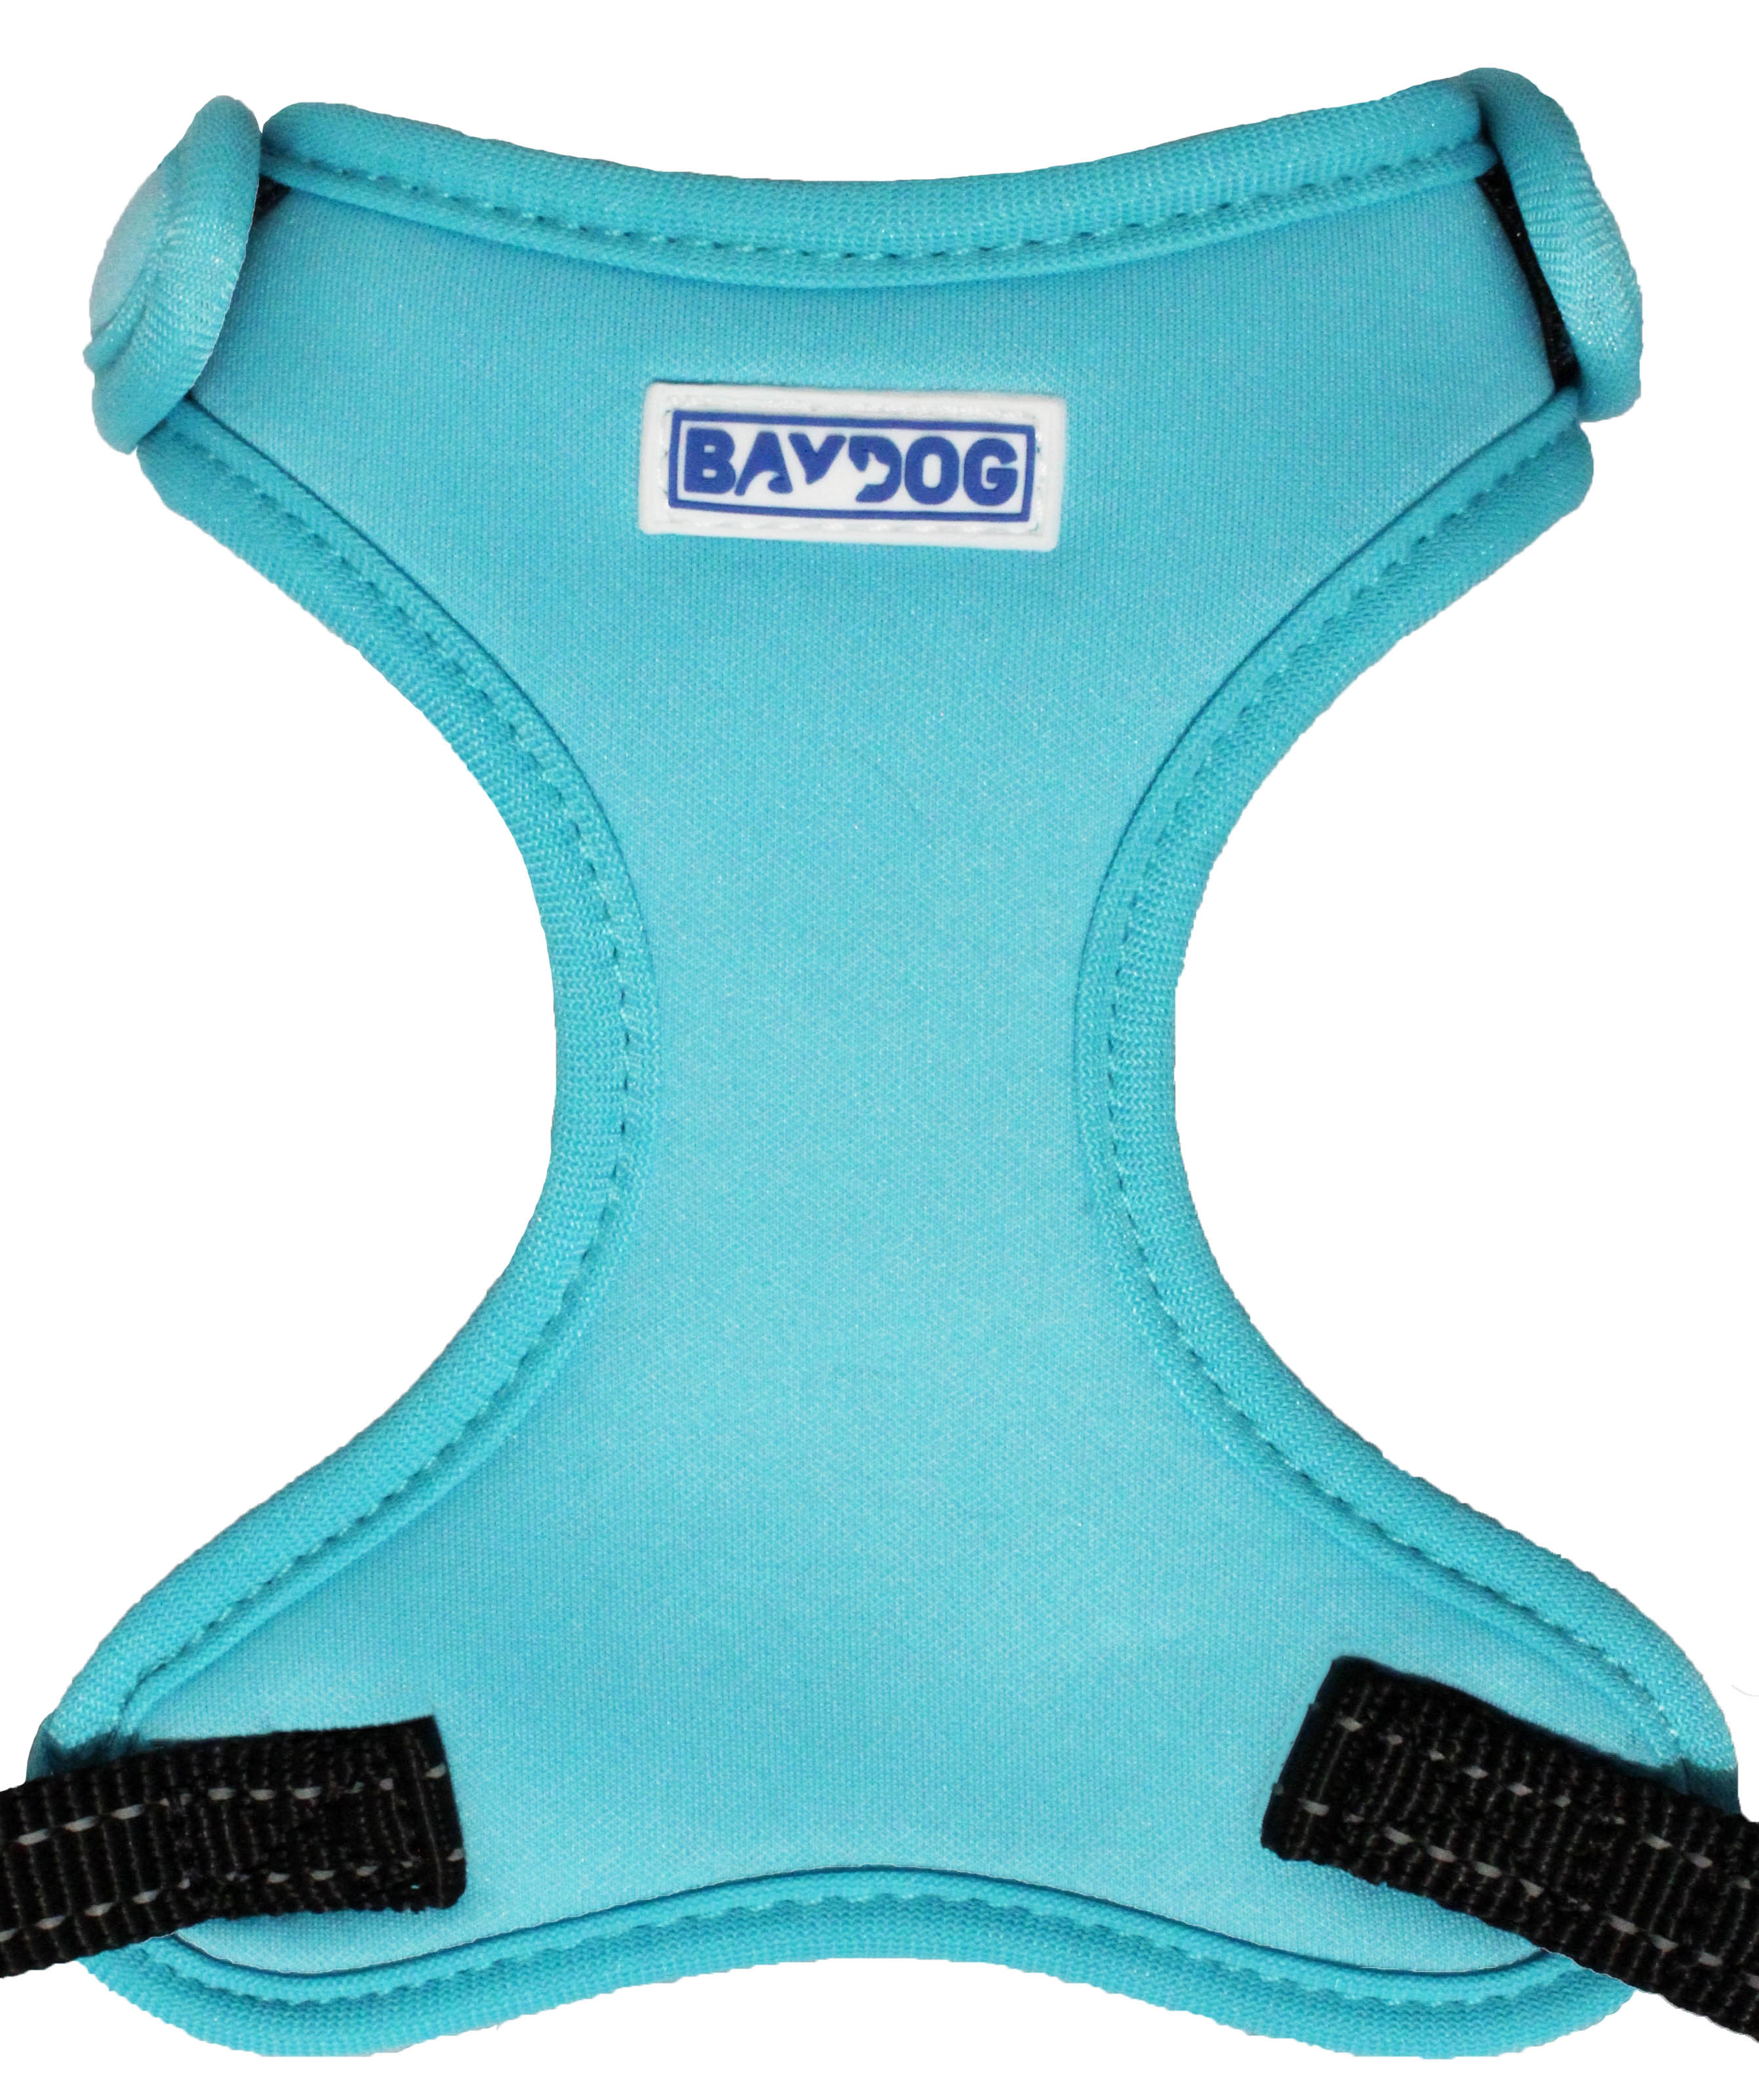 BayDog Cape Cod Harness for Dogs, Teal, Small